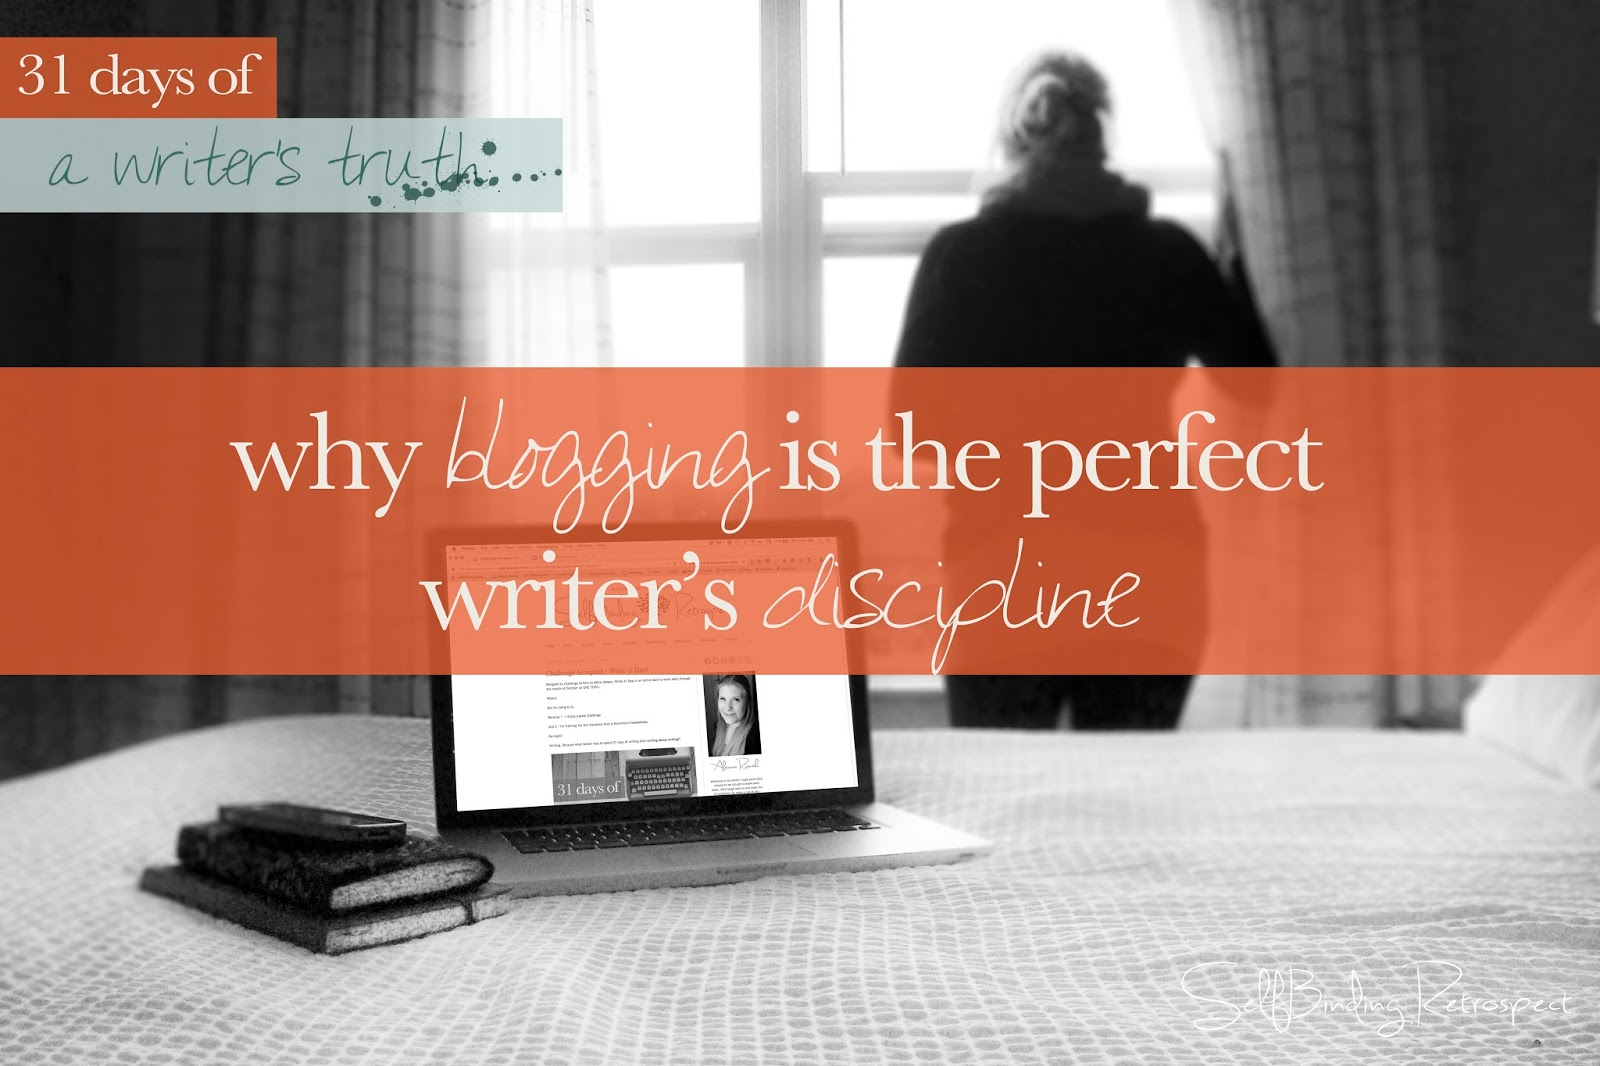 why blogging is the perfect discipline for a writer #write31days